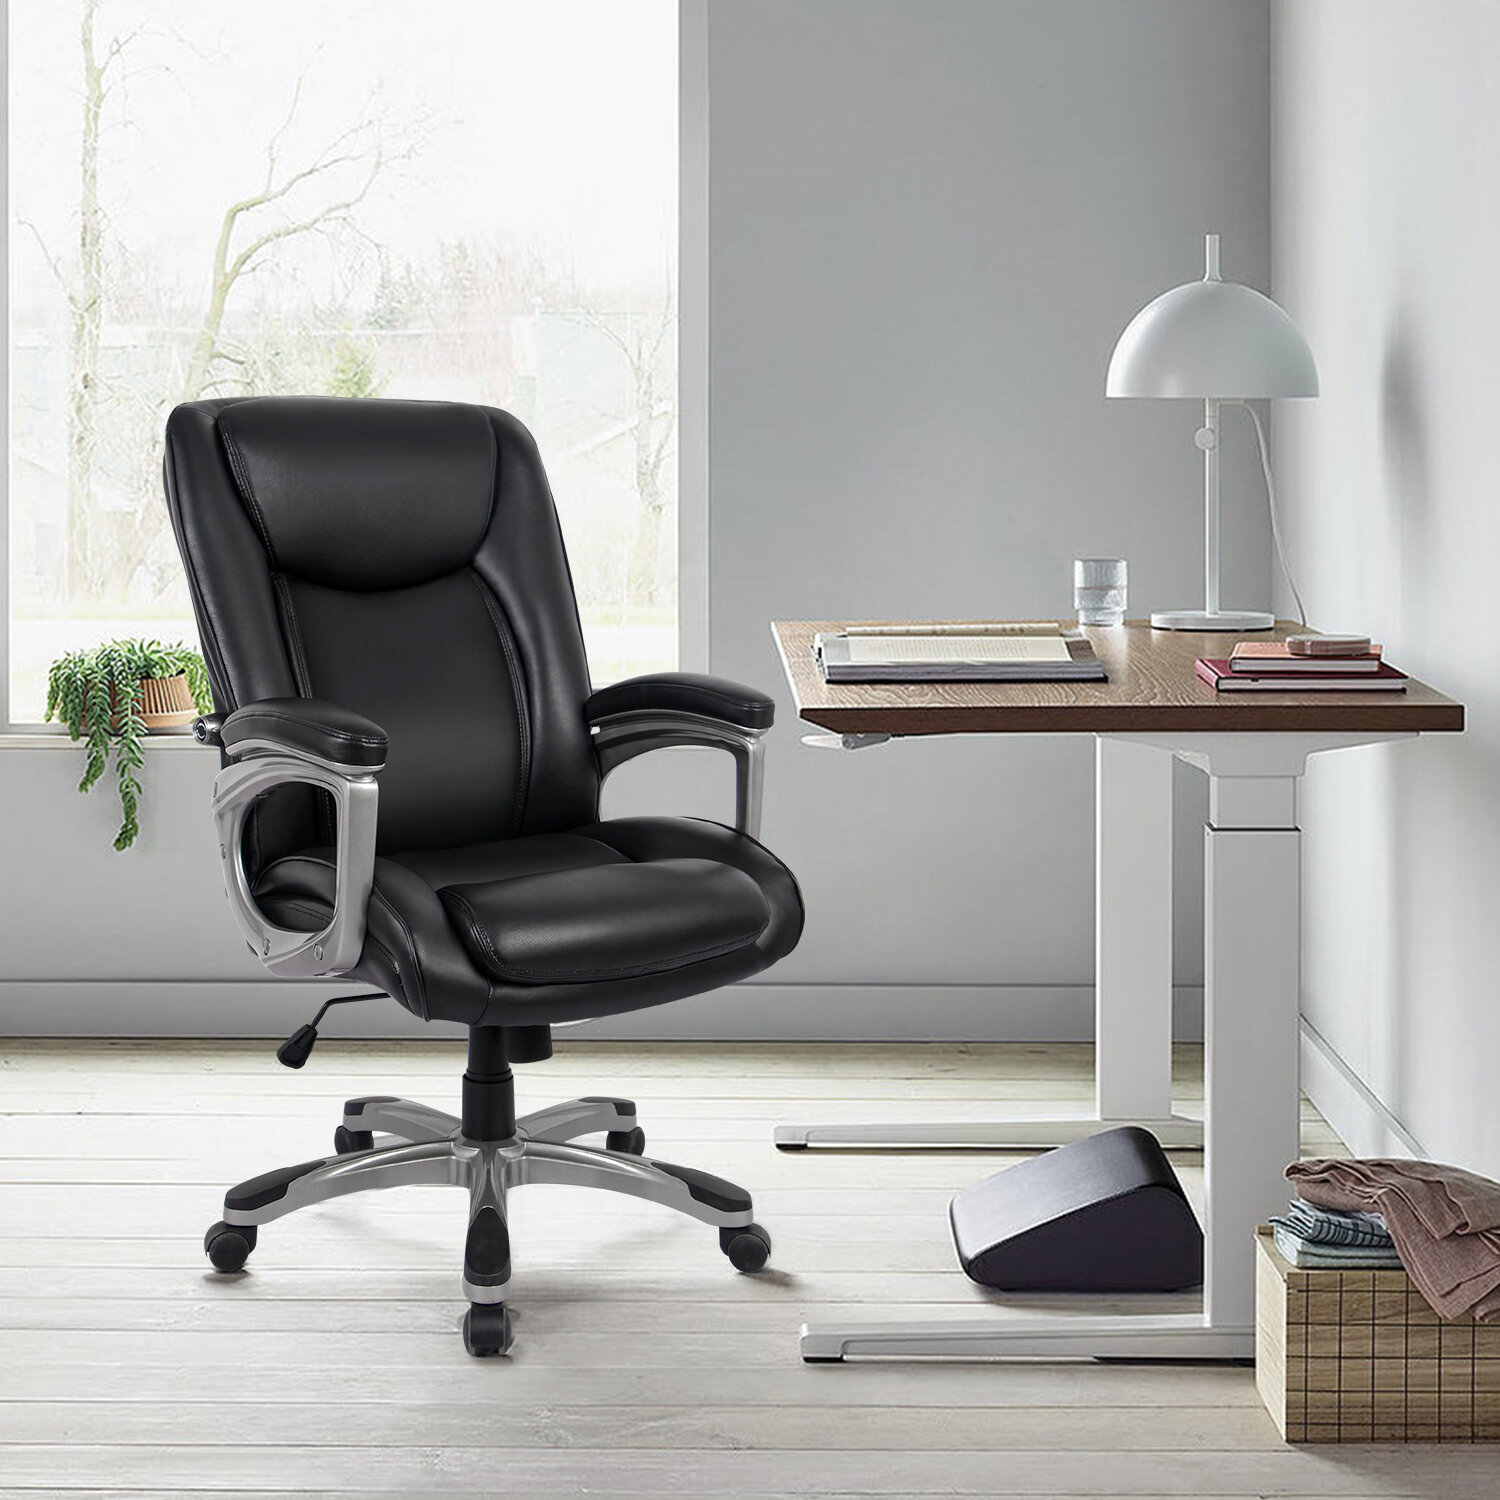 RIMIKING Ergonomic Memory Foam Executive Office Chair - Adjustable Height  Built-In Lumbar Support Tilt Angle Computer Desk Chair, Swivel Thick Padded  For Comfort | Wayfair.ca